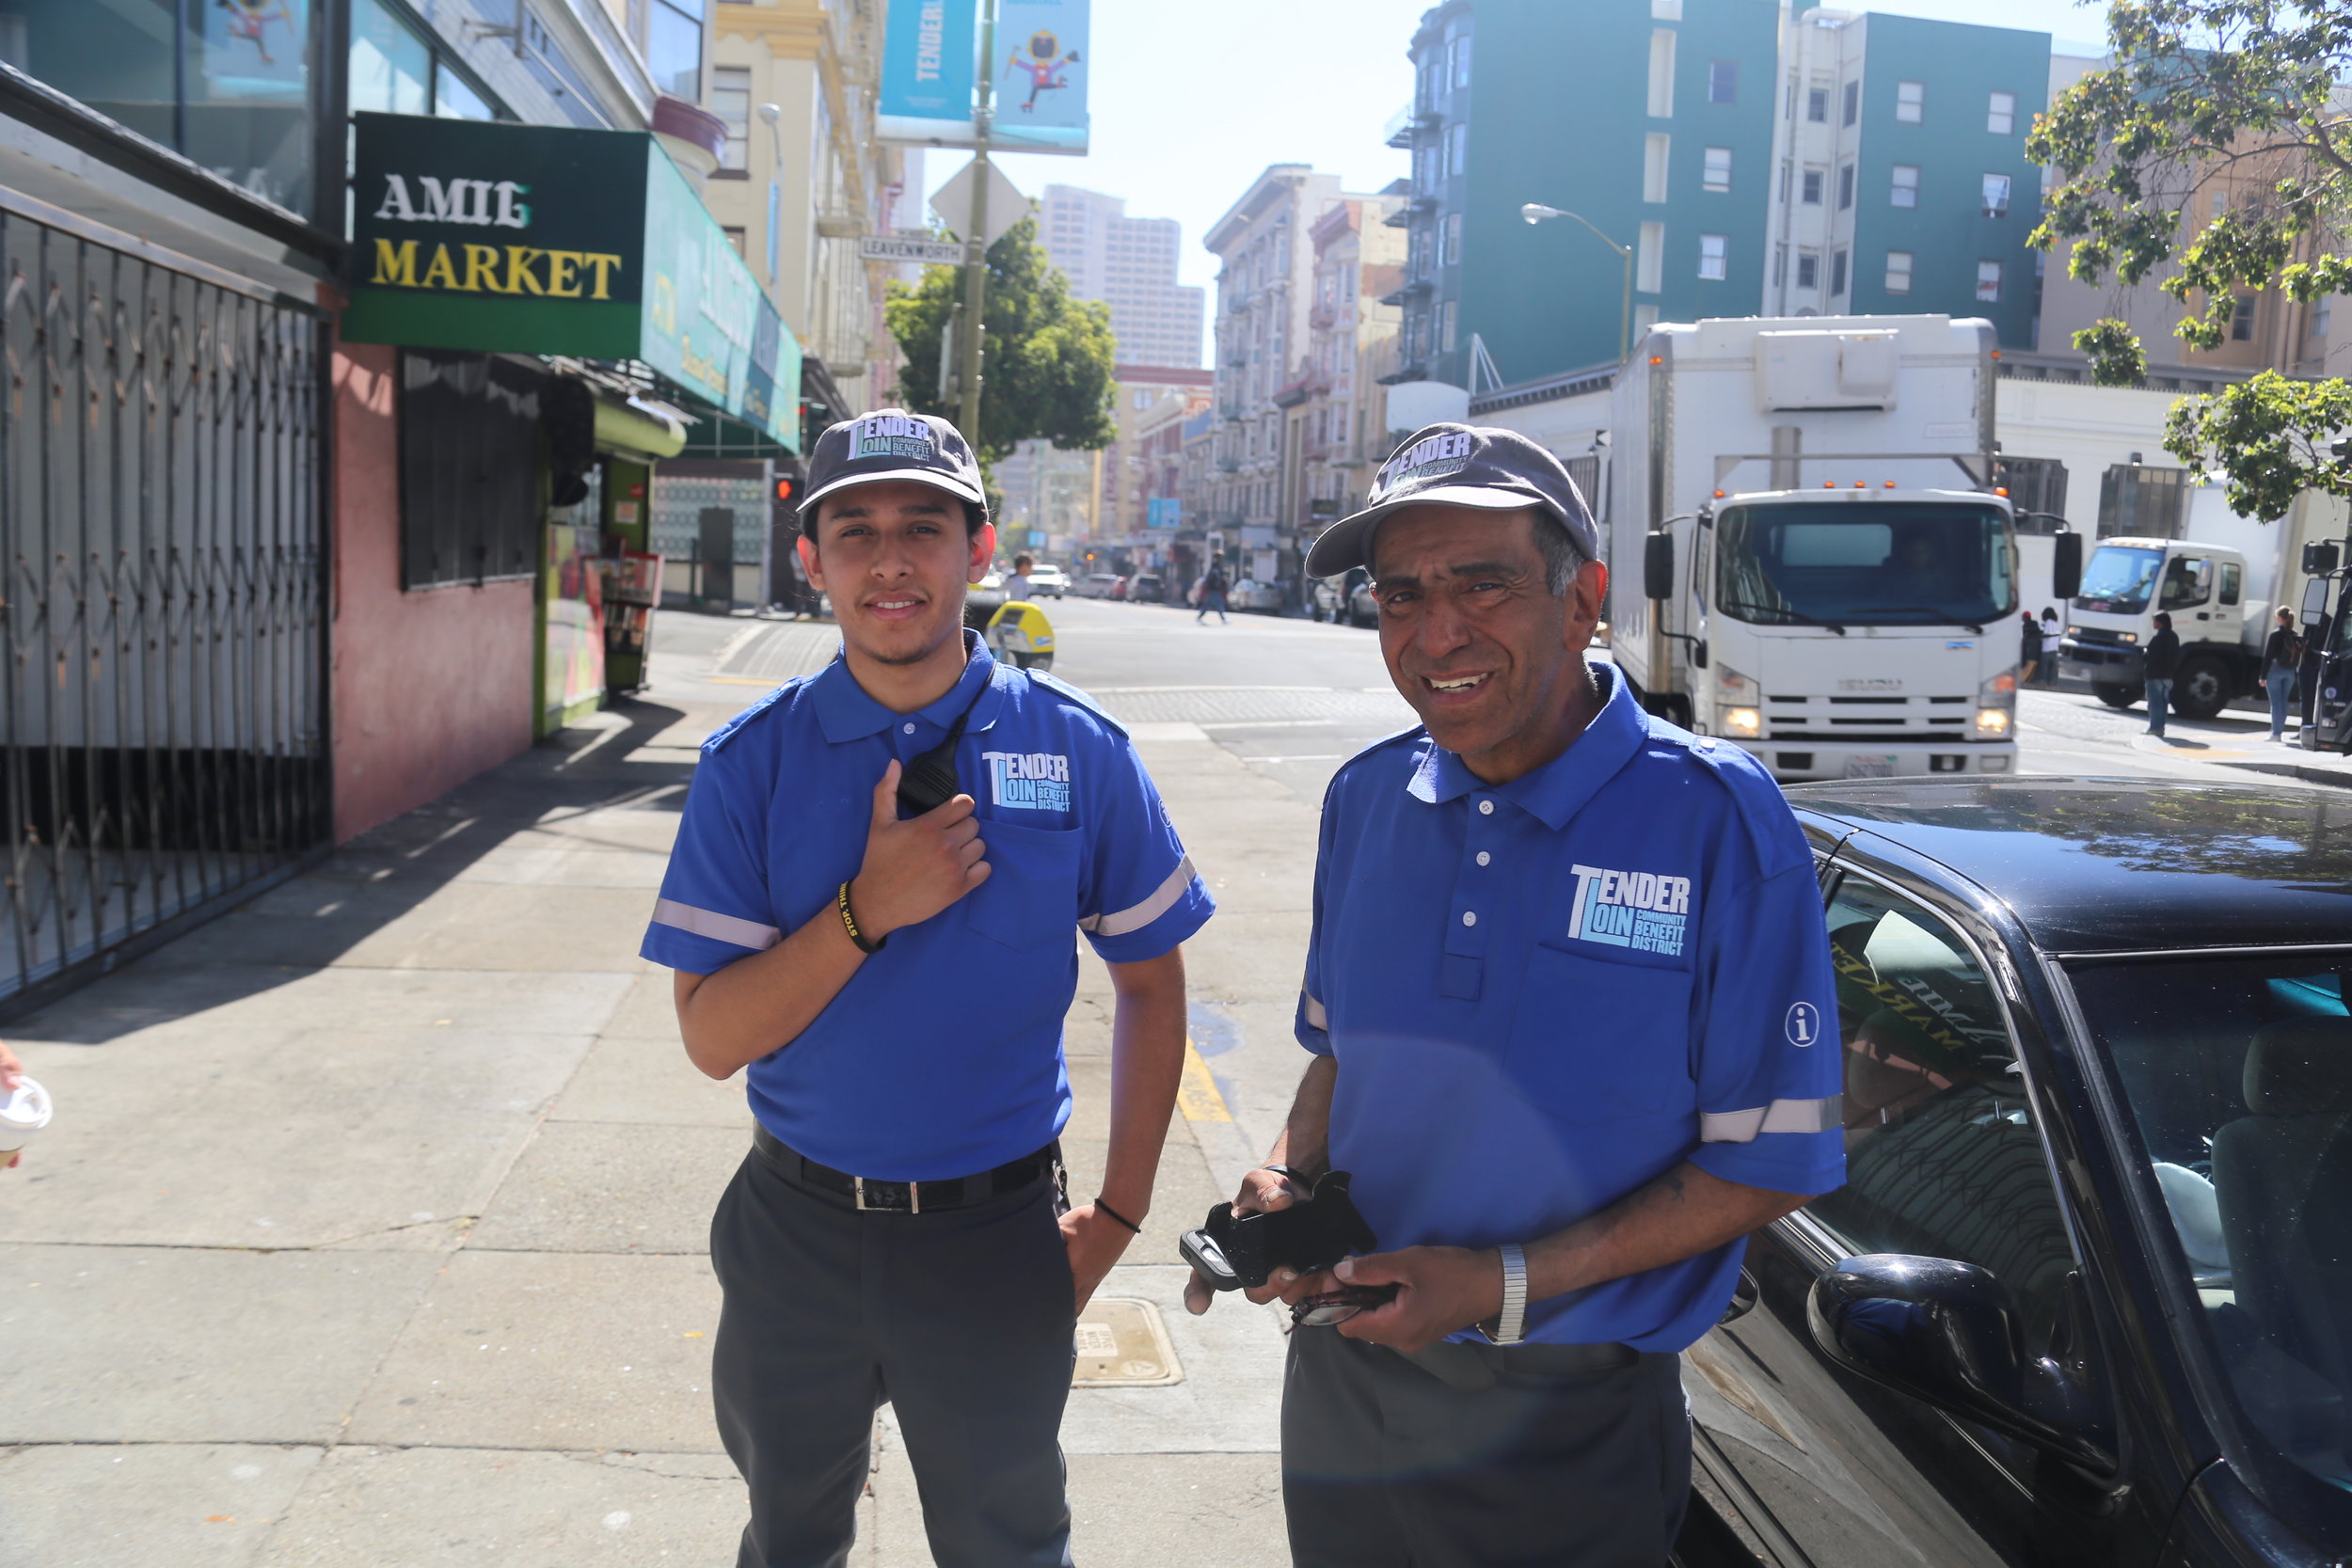 CLEAN TEAM - Our Clean Team service partners work 7 days a week focused on keeping the Tenderloin neighborhood clean.READ MORE